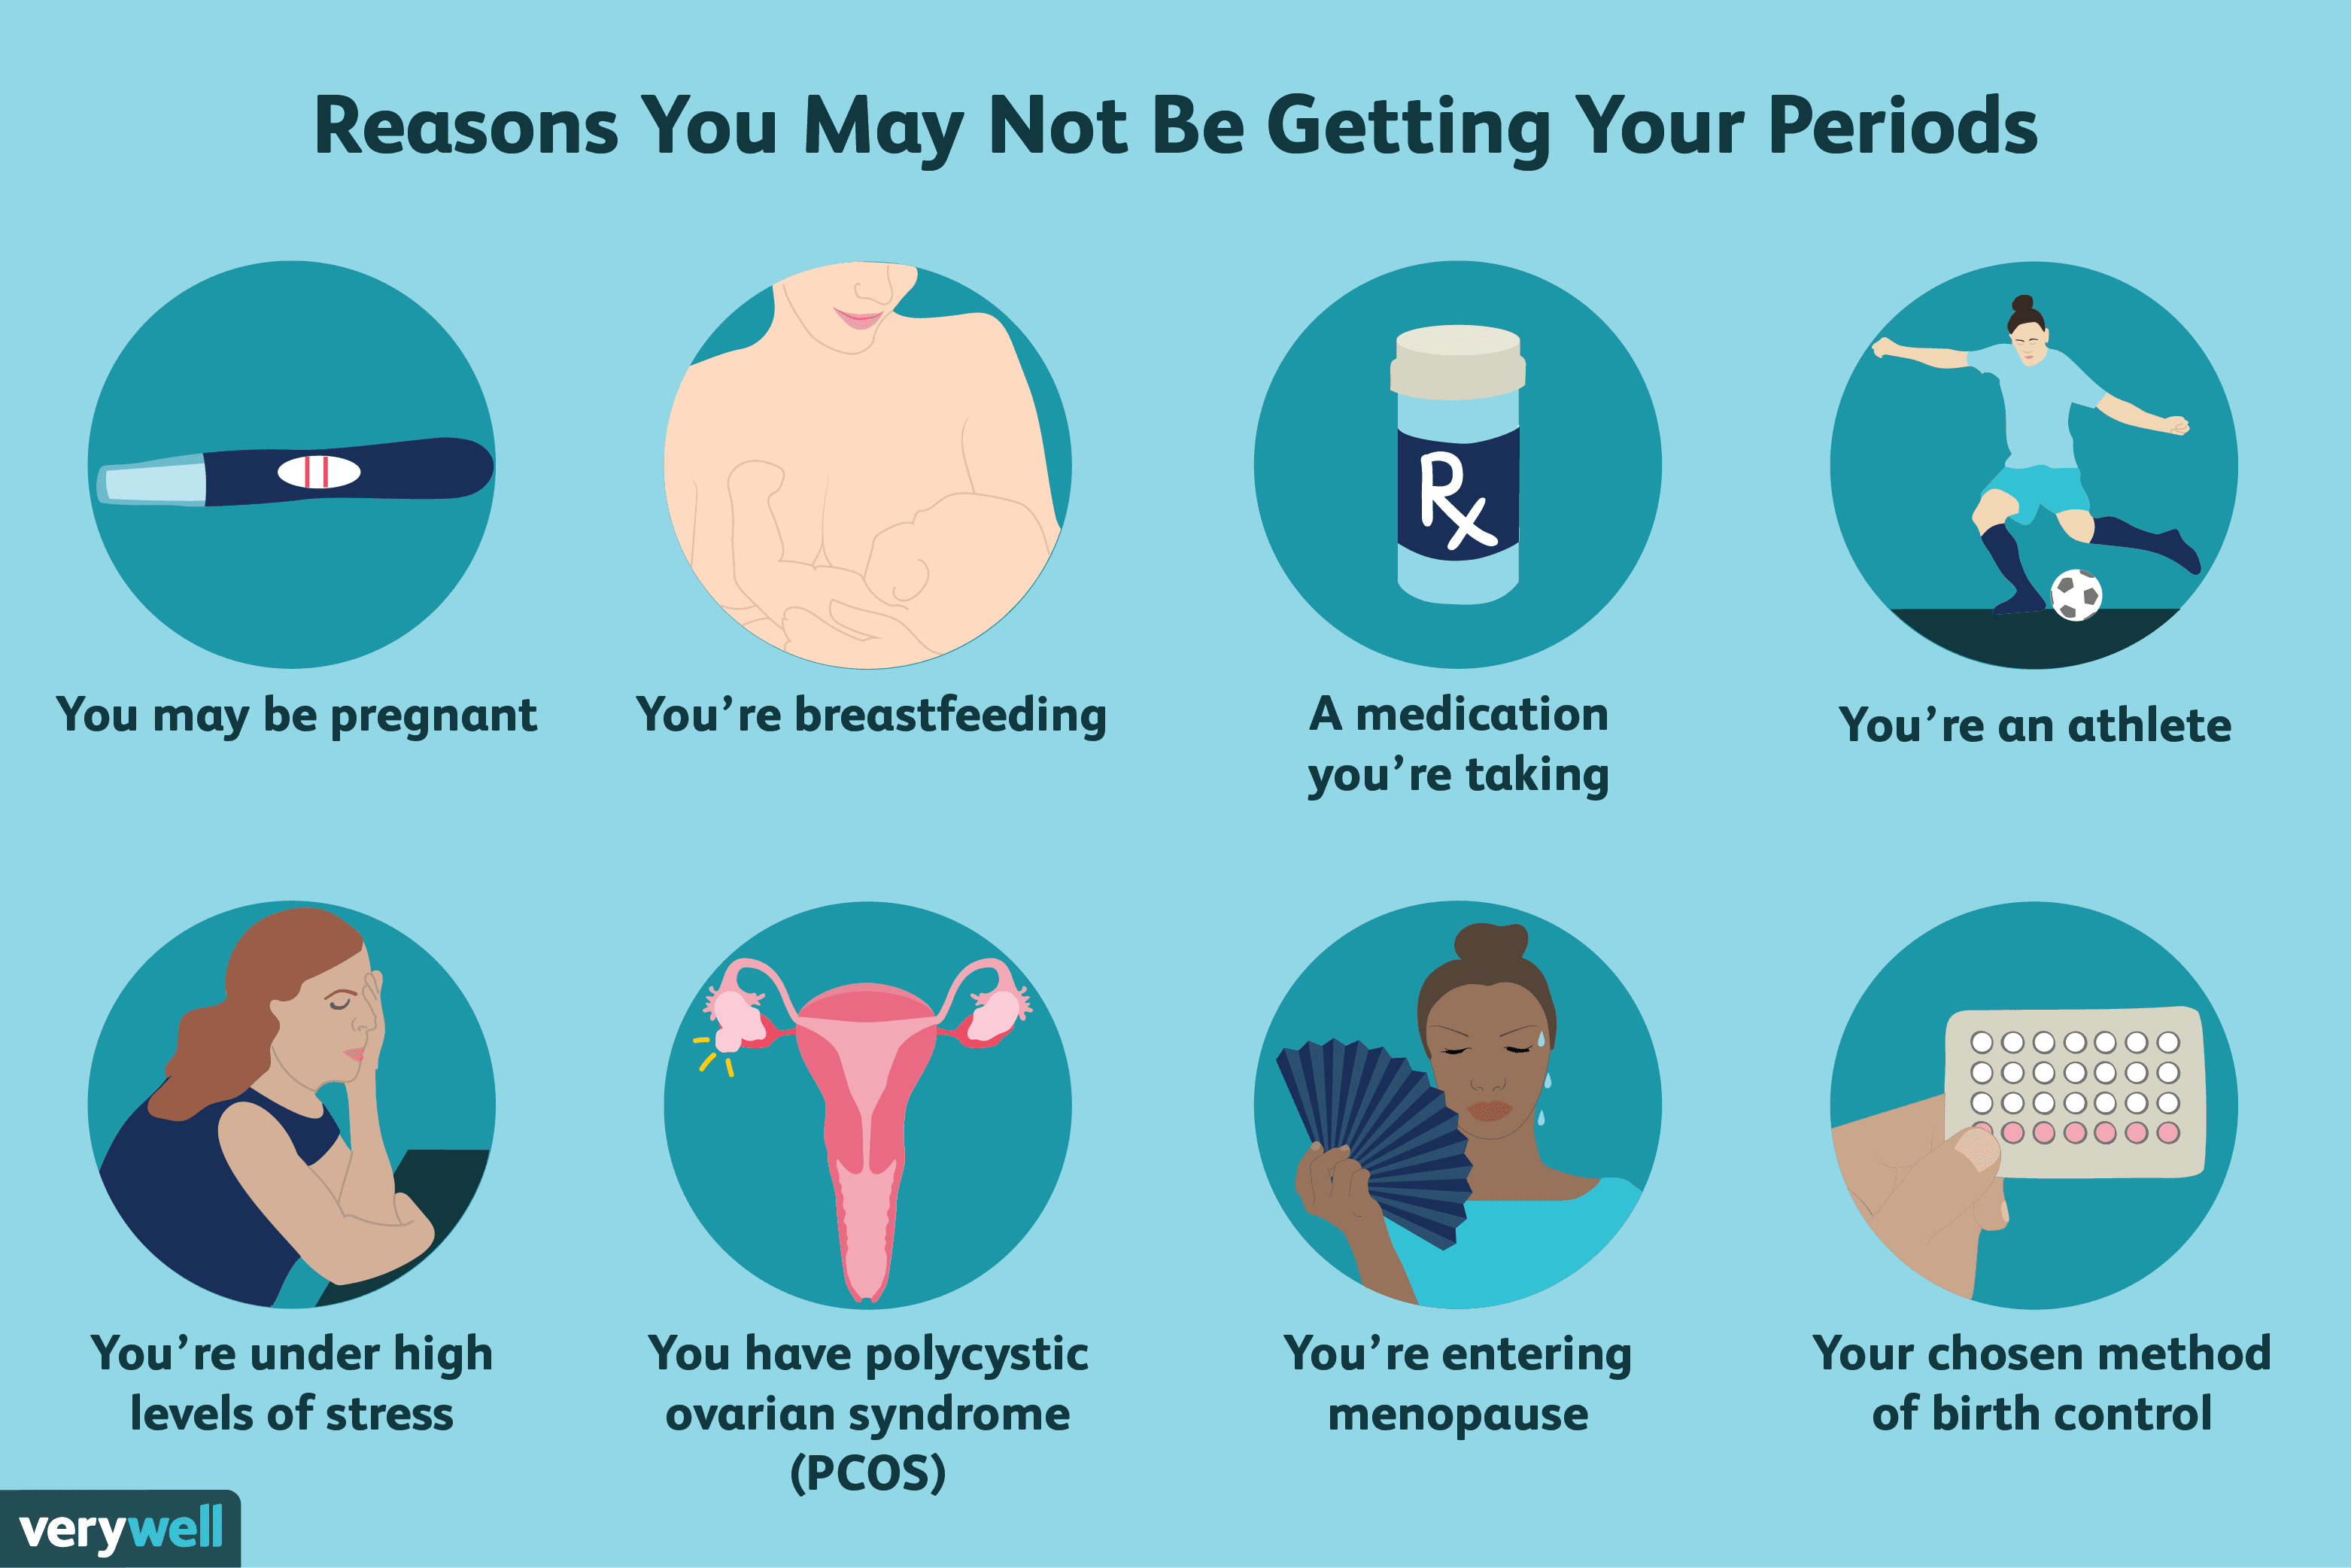 having sex during periods will cause pregnancy in Beaumont